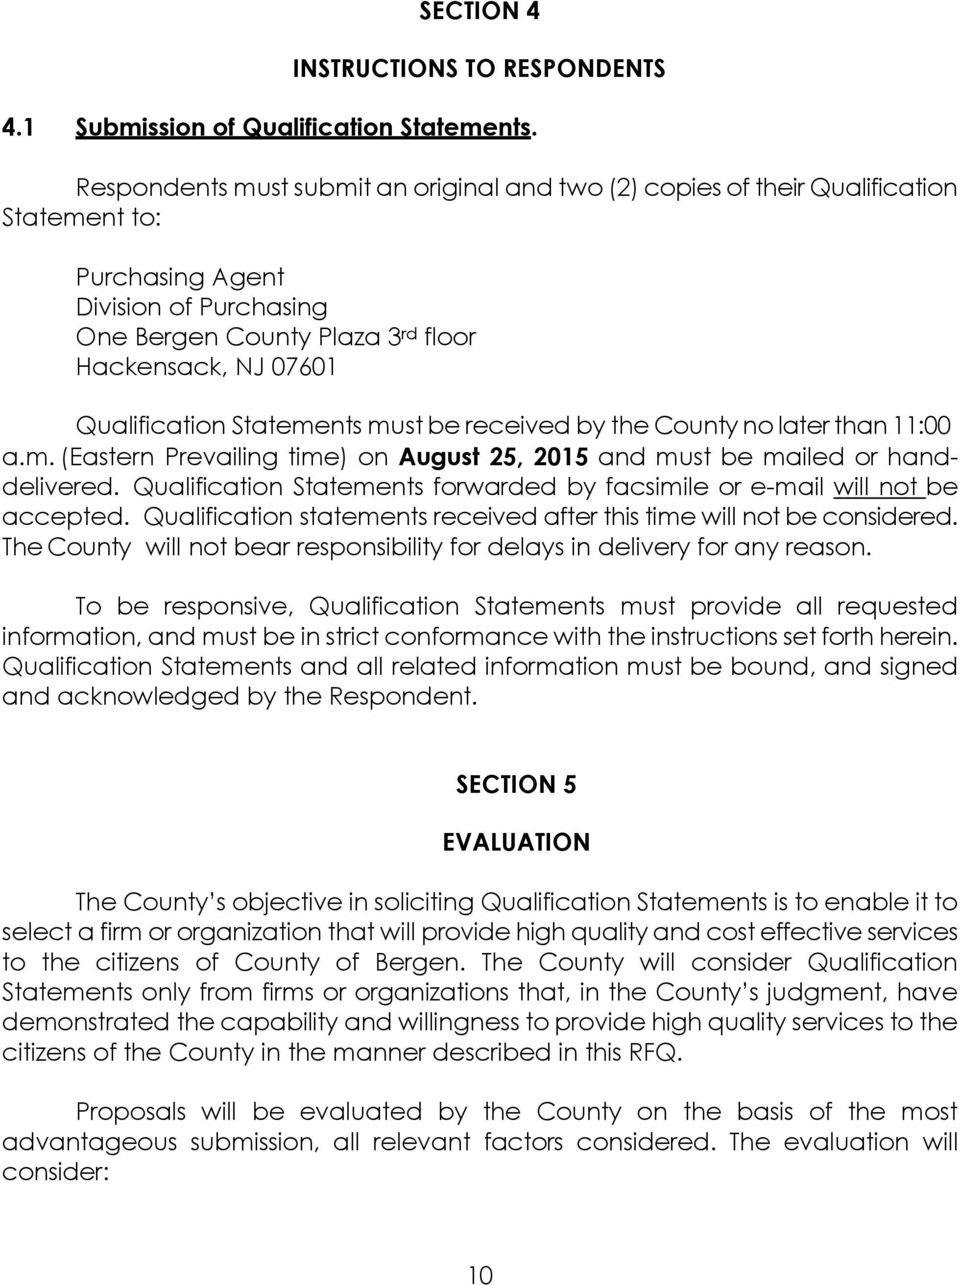 Qualification Statements must be received by the County no later than 11:00 a.m. (Eastern Prevailing time) on August 25, 2015 and must be mailed or handdelivered.